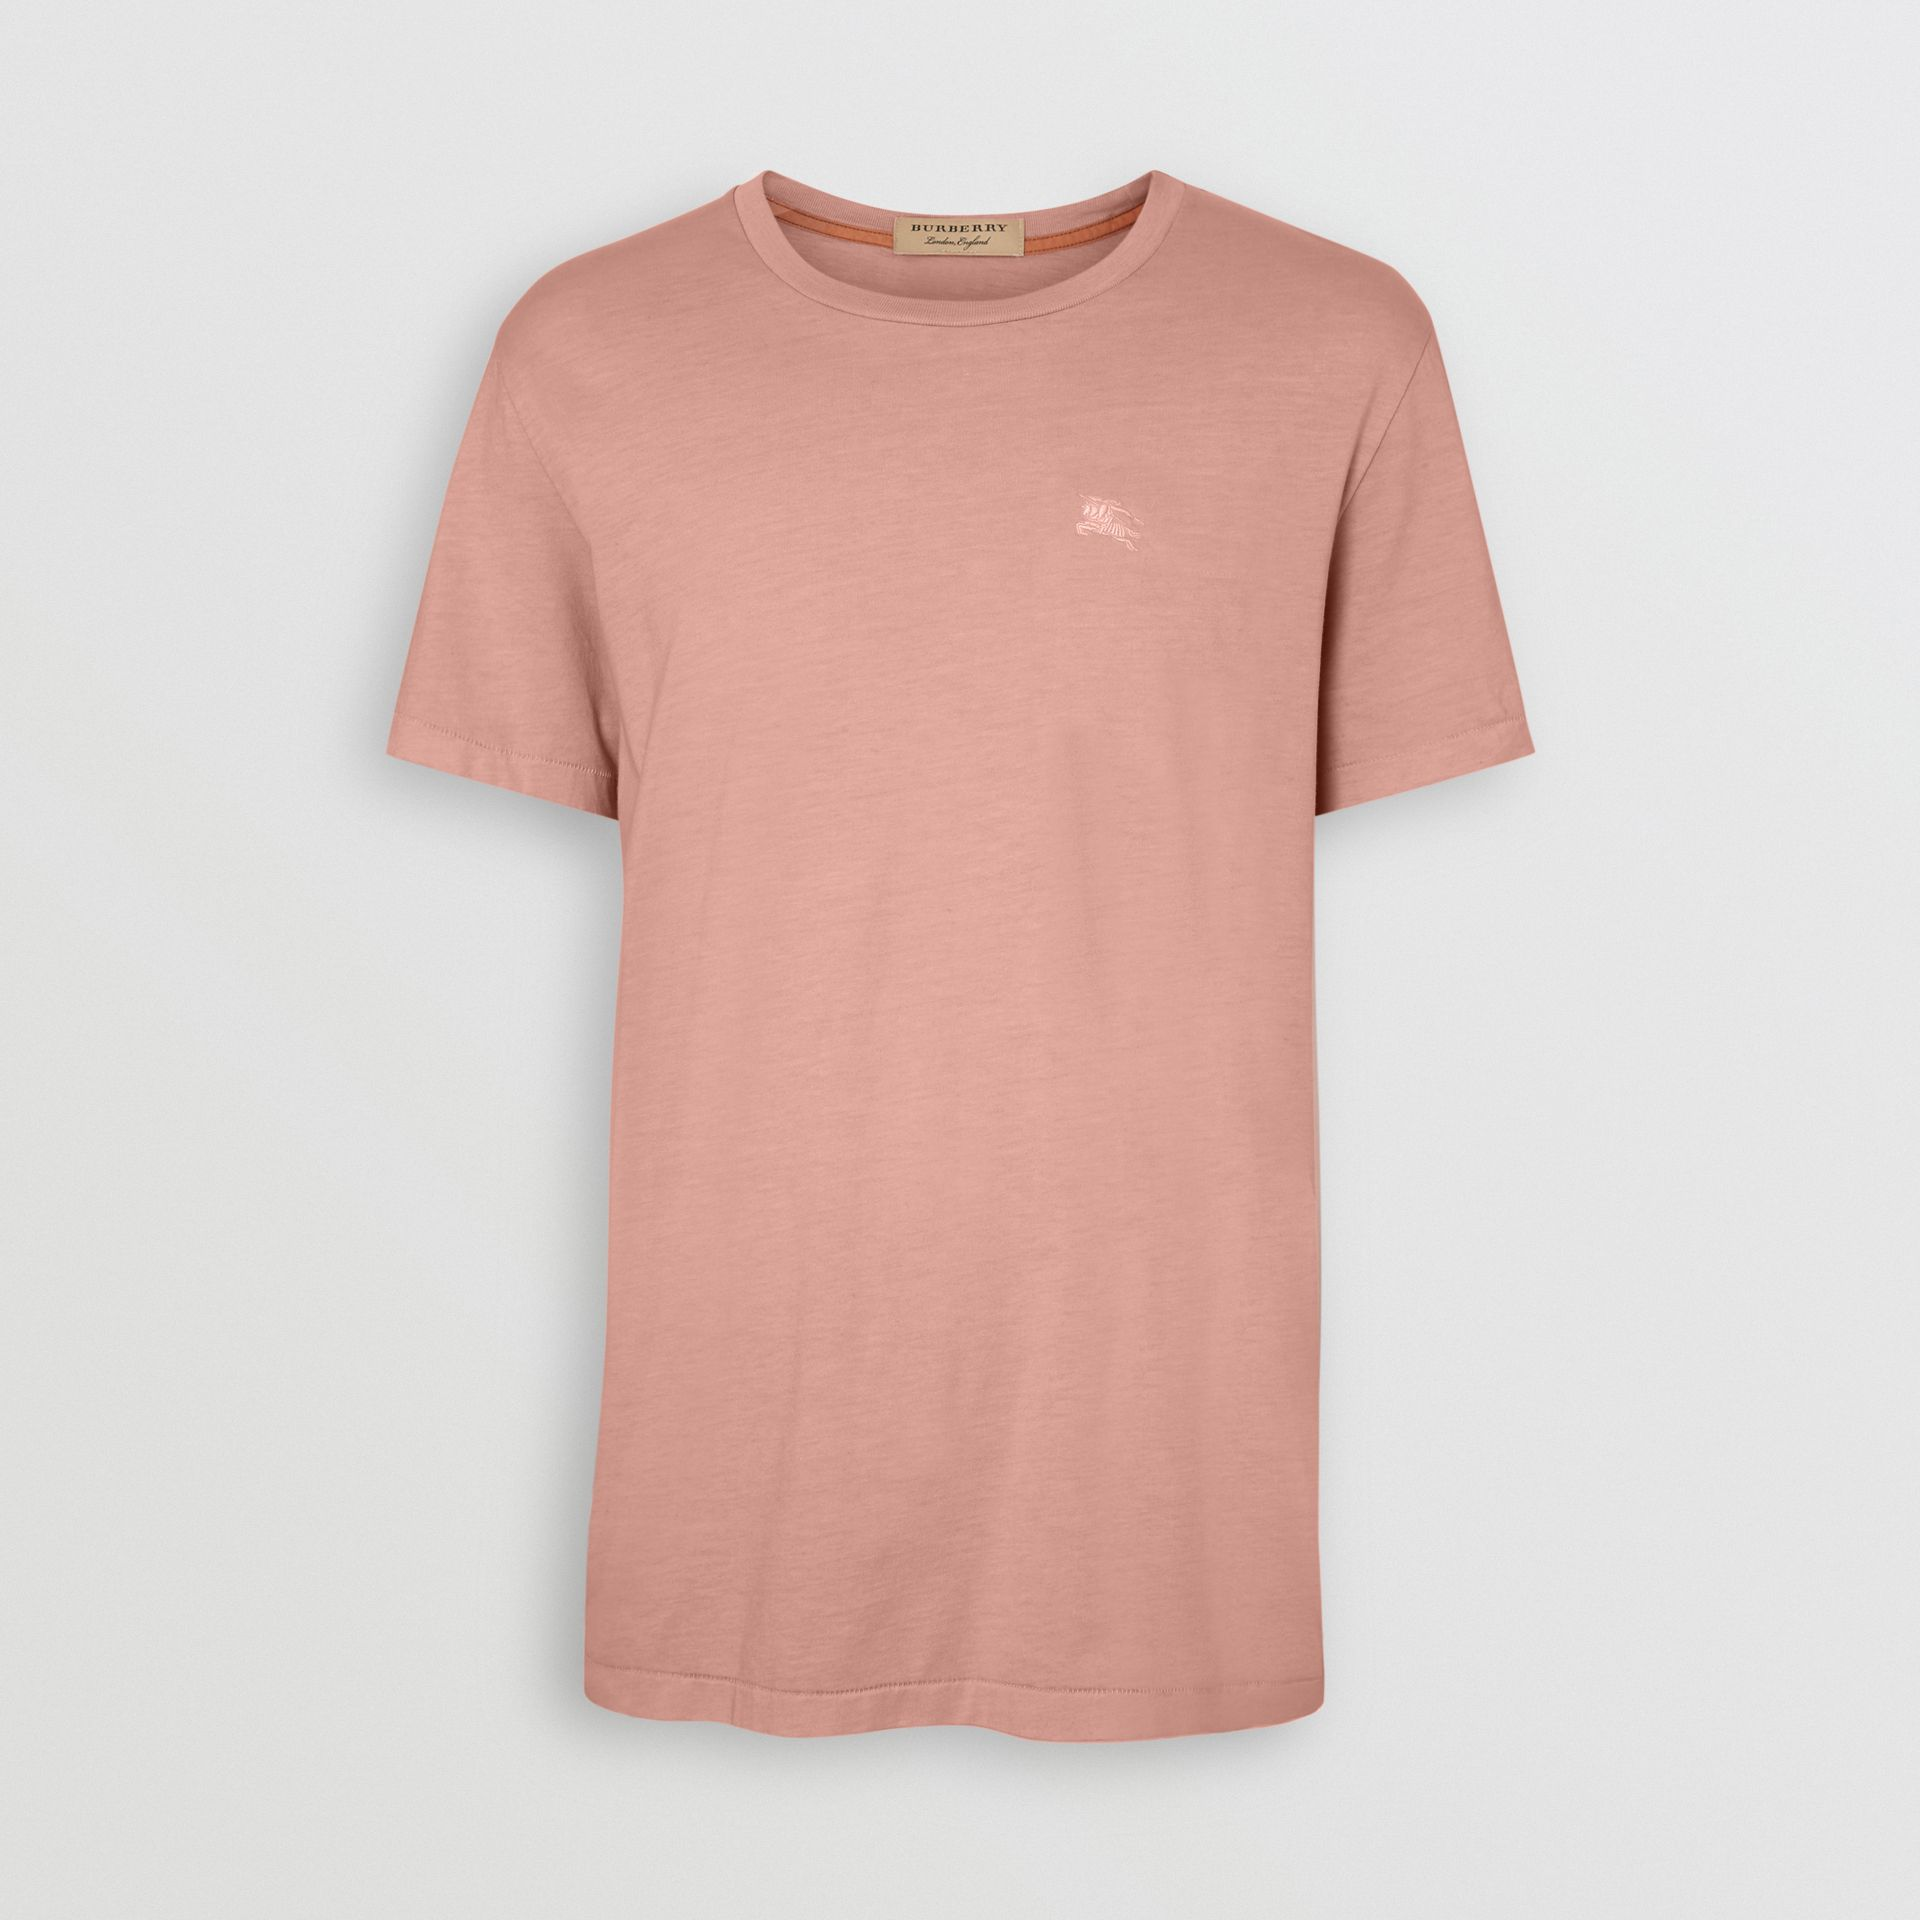 Cotton T-shirt in Chalk Pink - Men | Burberry Australia - gallery image 3